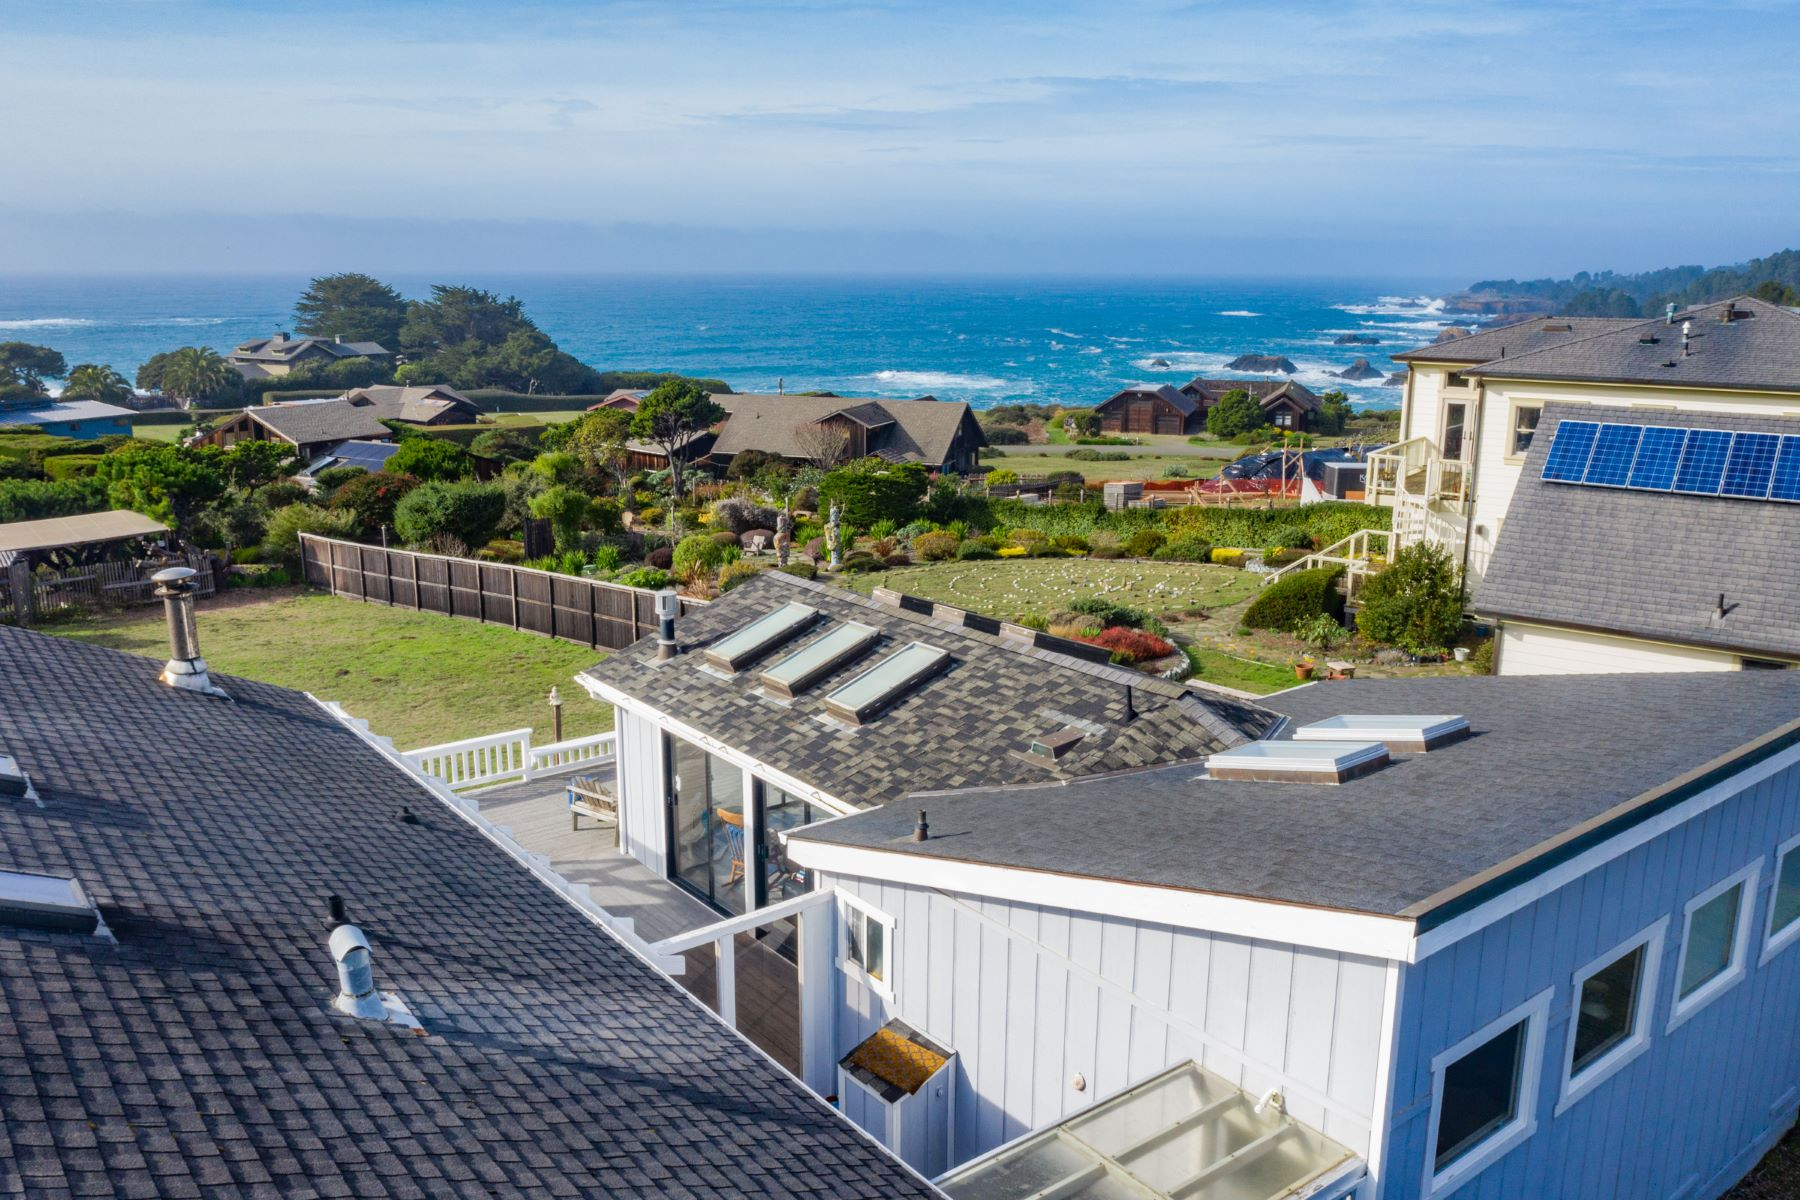 Single Family Homes for Sale at Stylishly Remodeled Home and Studio 10880 Palette Drive Mendocino, California 95460 United States